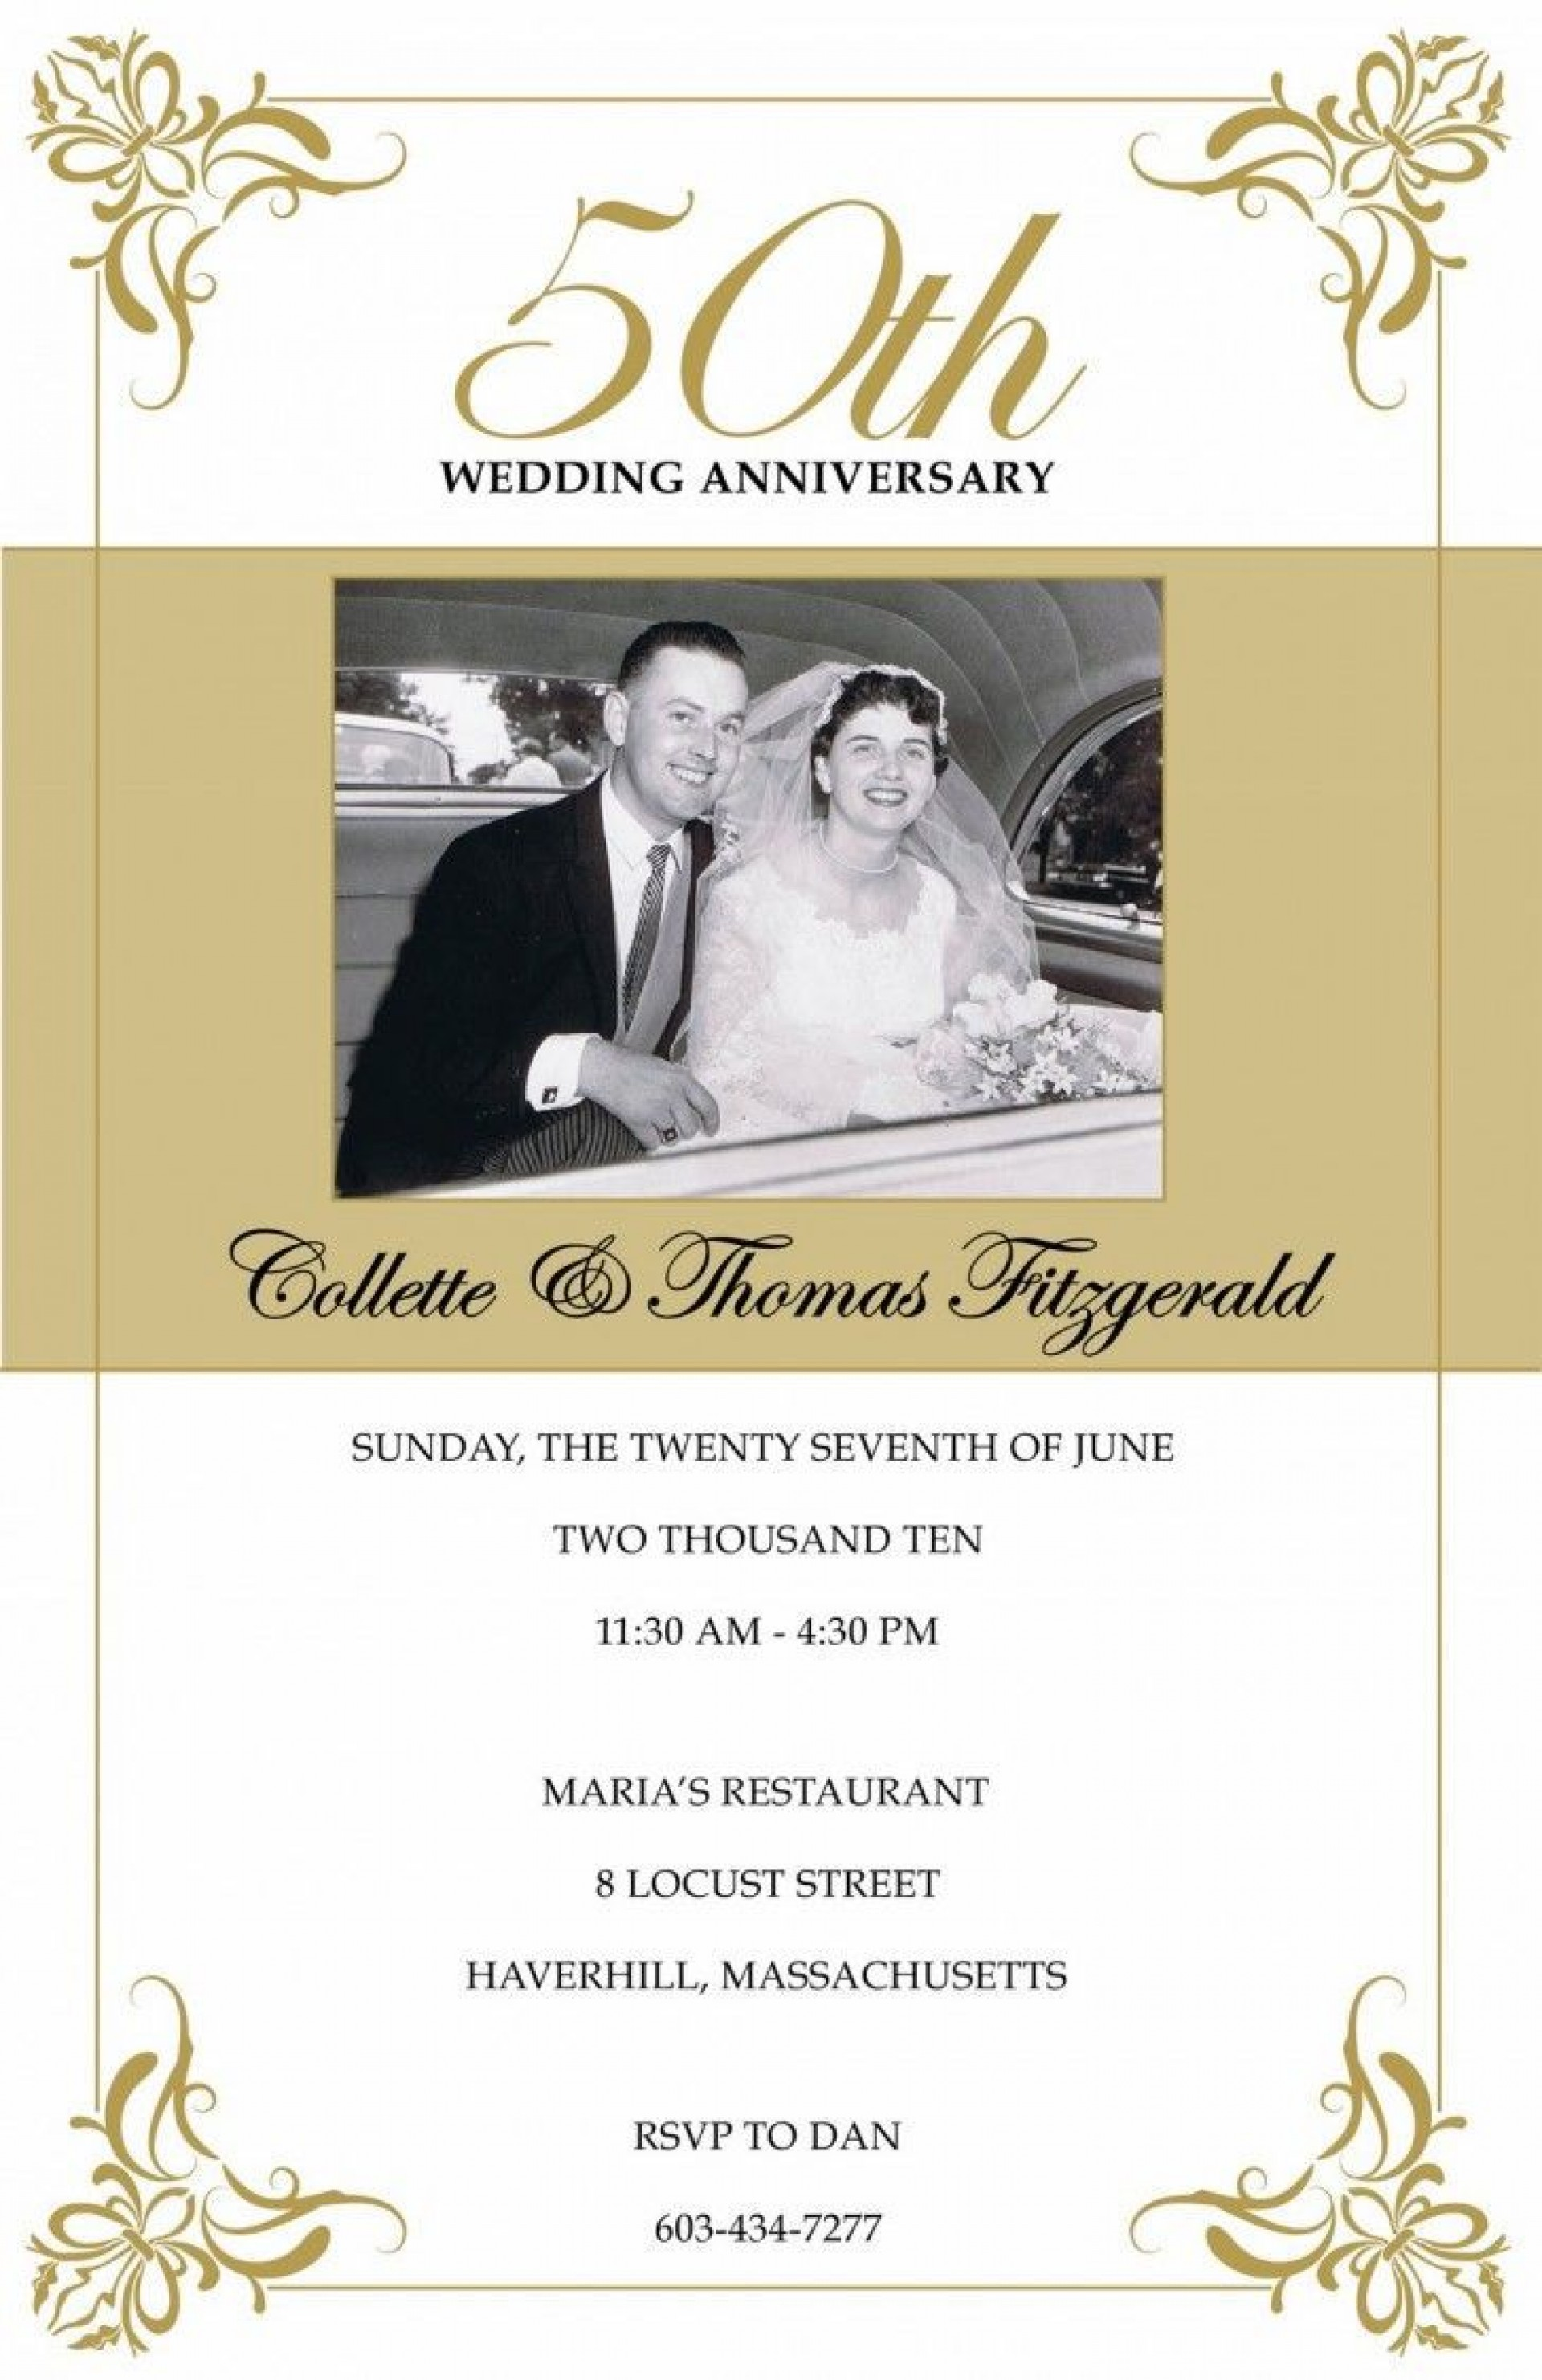 007 Formidable 50th Wedding Anniversary Invitation Card Template Picture  Templates Sample1920